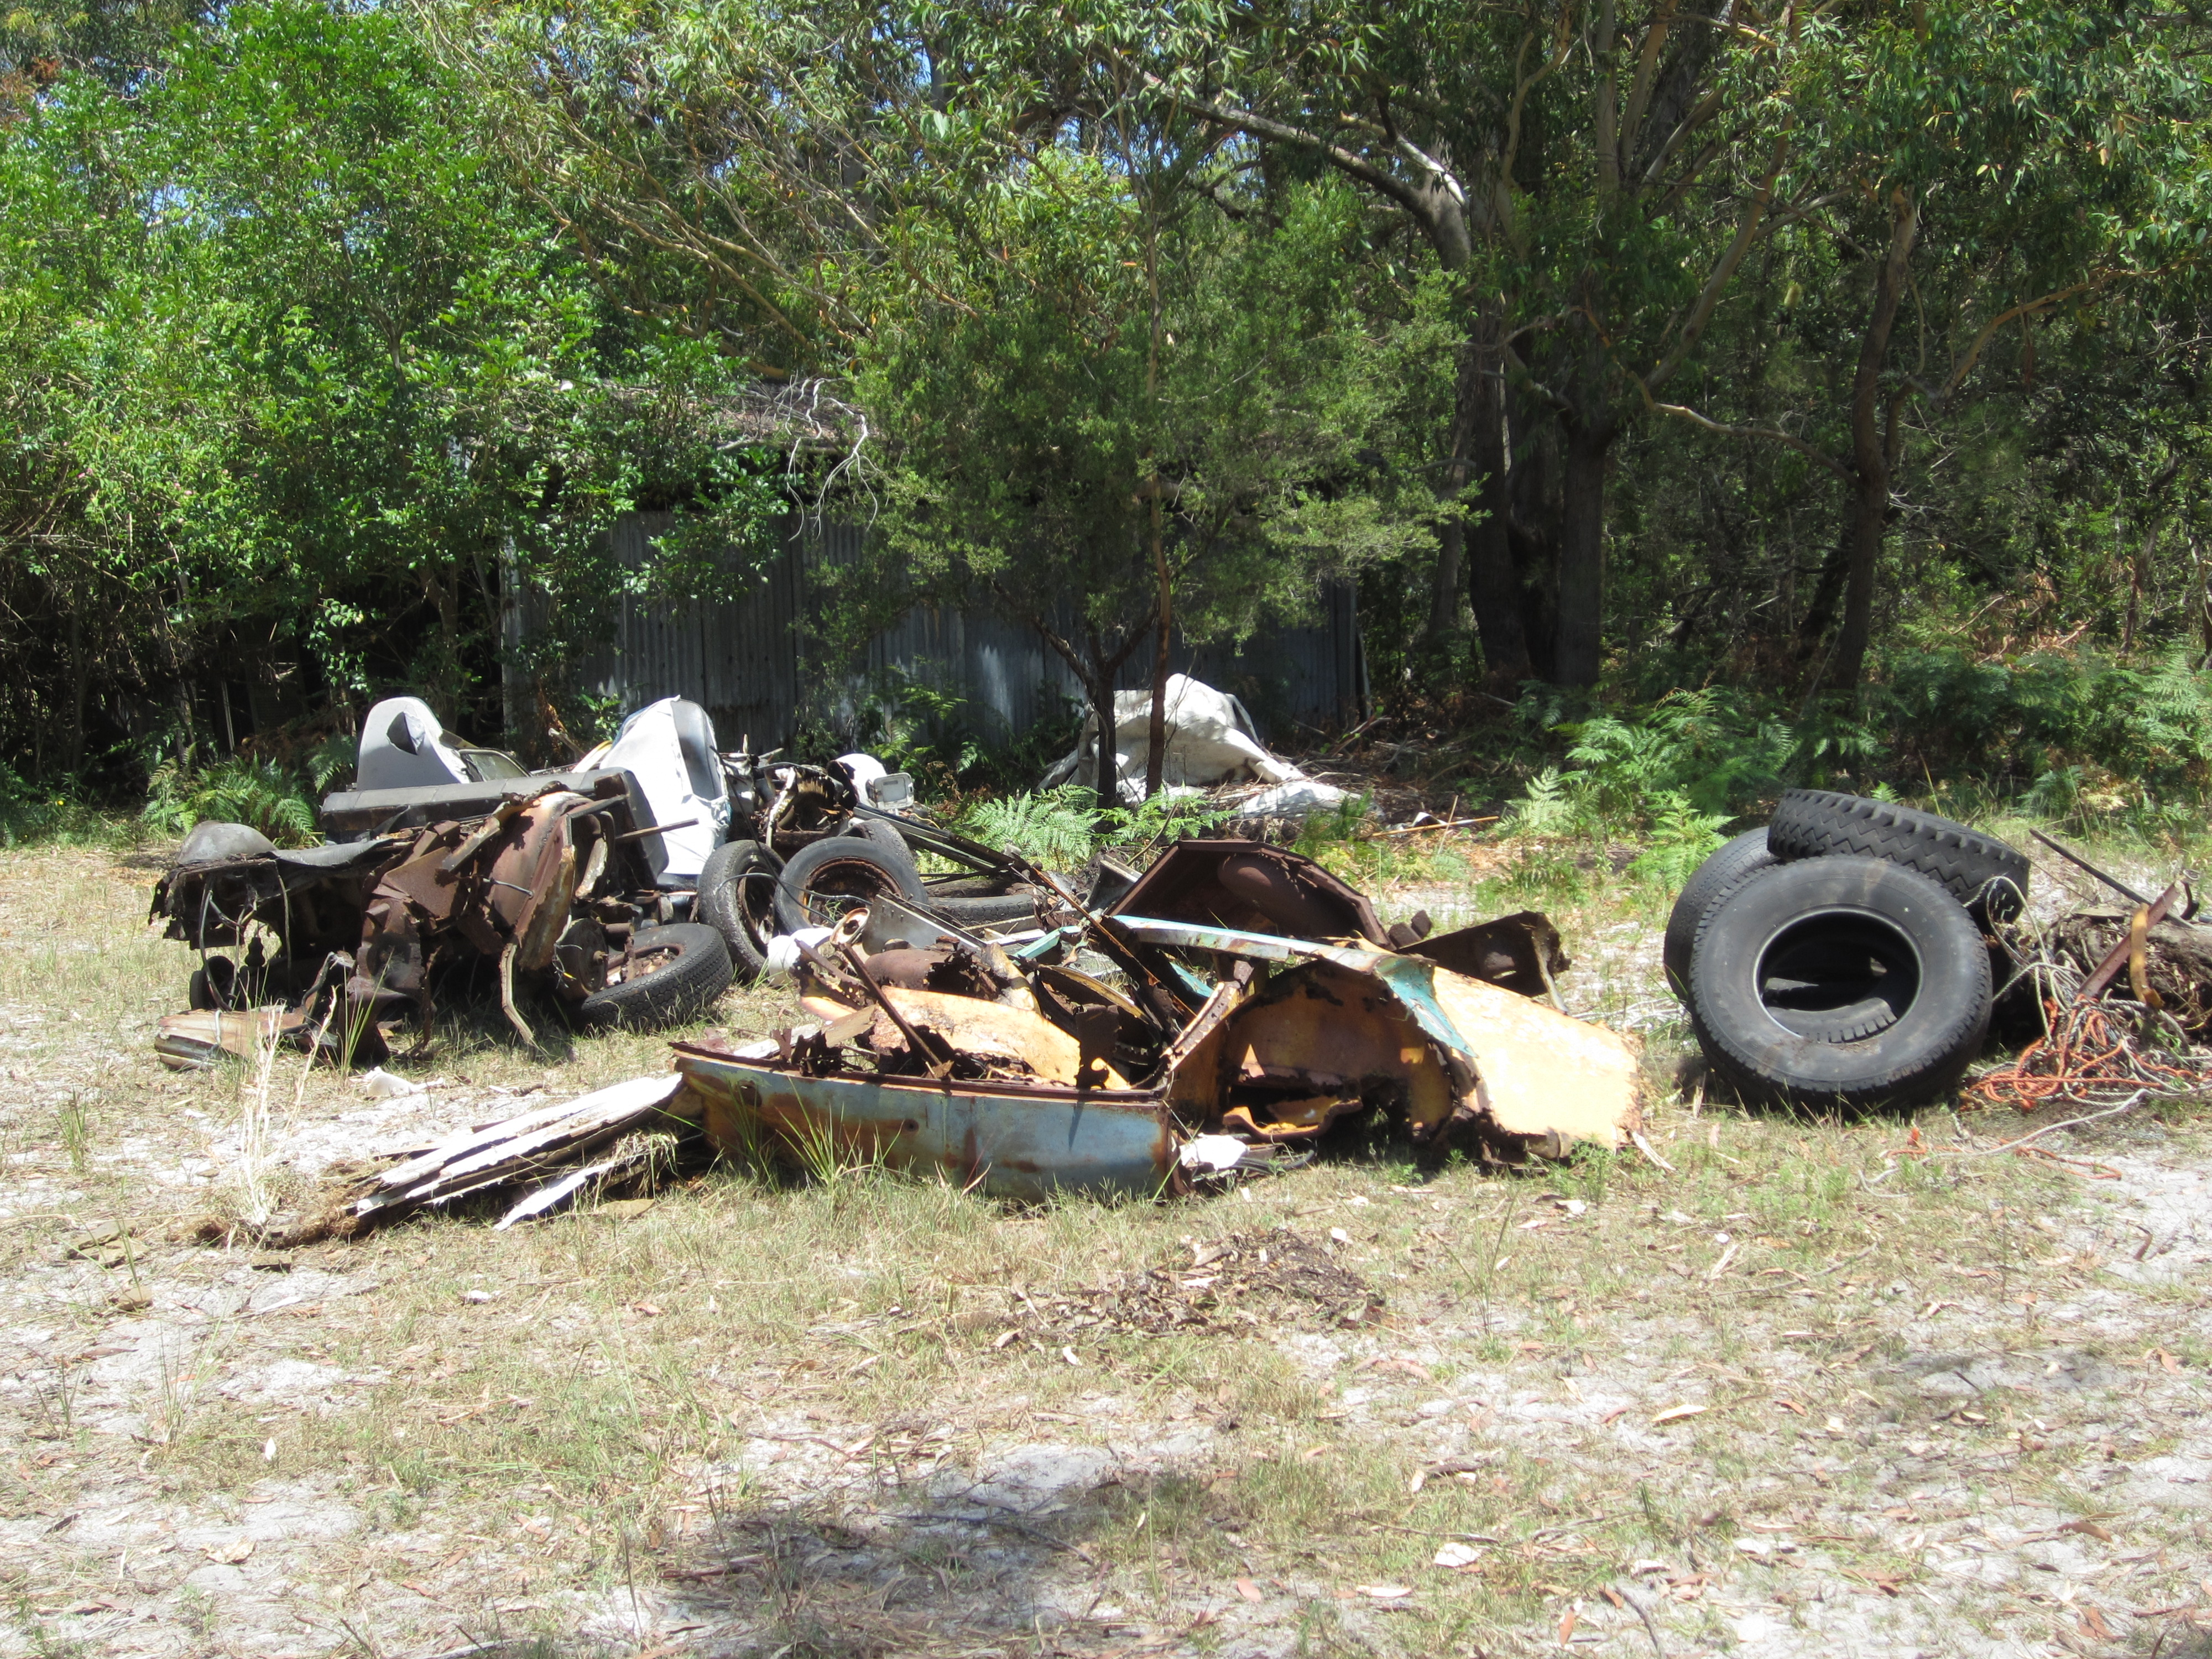 de4cd3c7933b Port Stephens Council has joined forces with Hunter Councils in a new  campaign to reduce the amount of illegal dumping in the region.